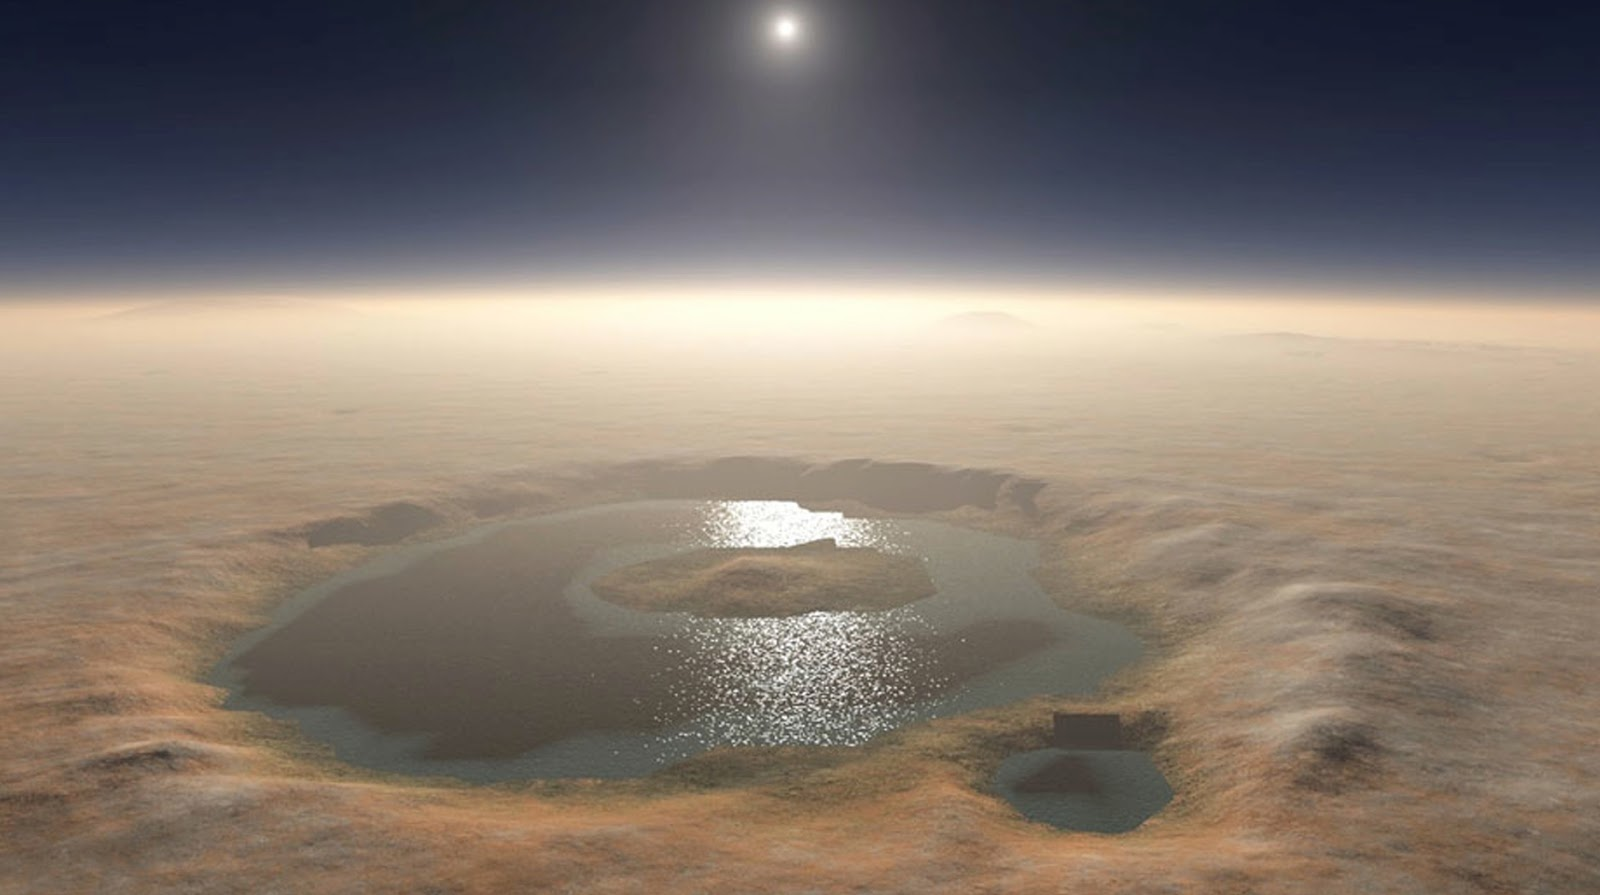 20 Billion From Bp >> Gale Crater Lake on Mars, 3 billion years ago | Earth Blog